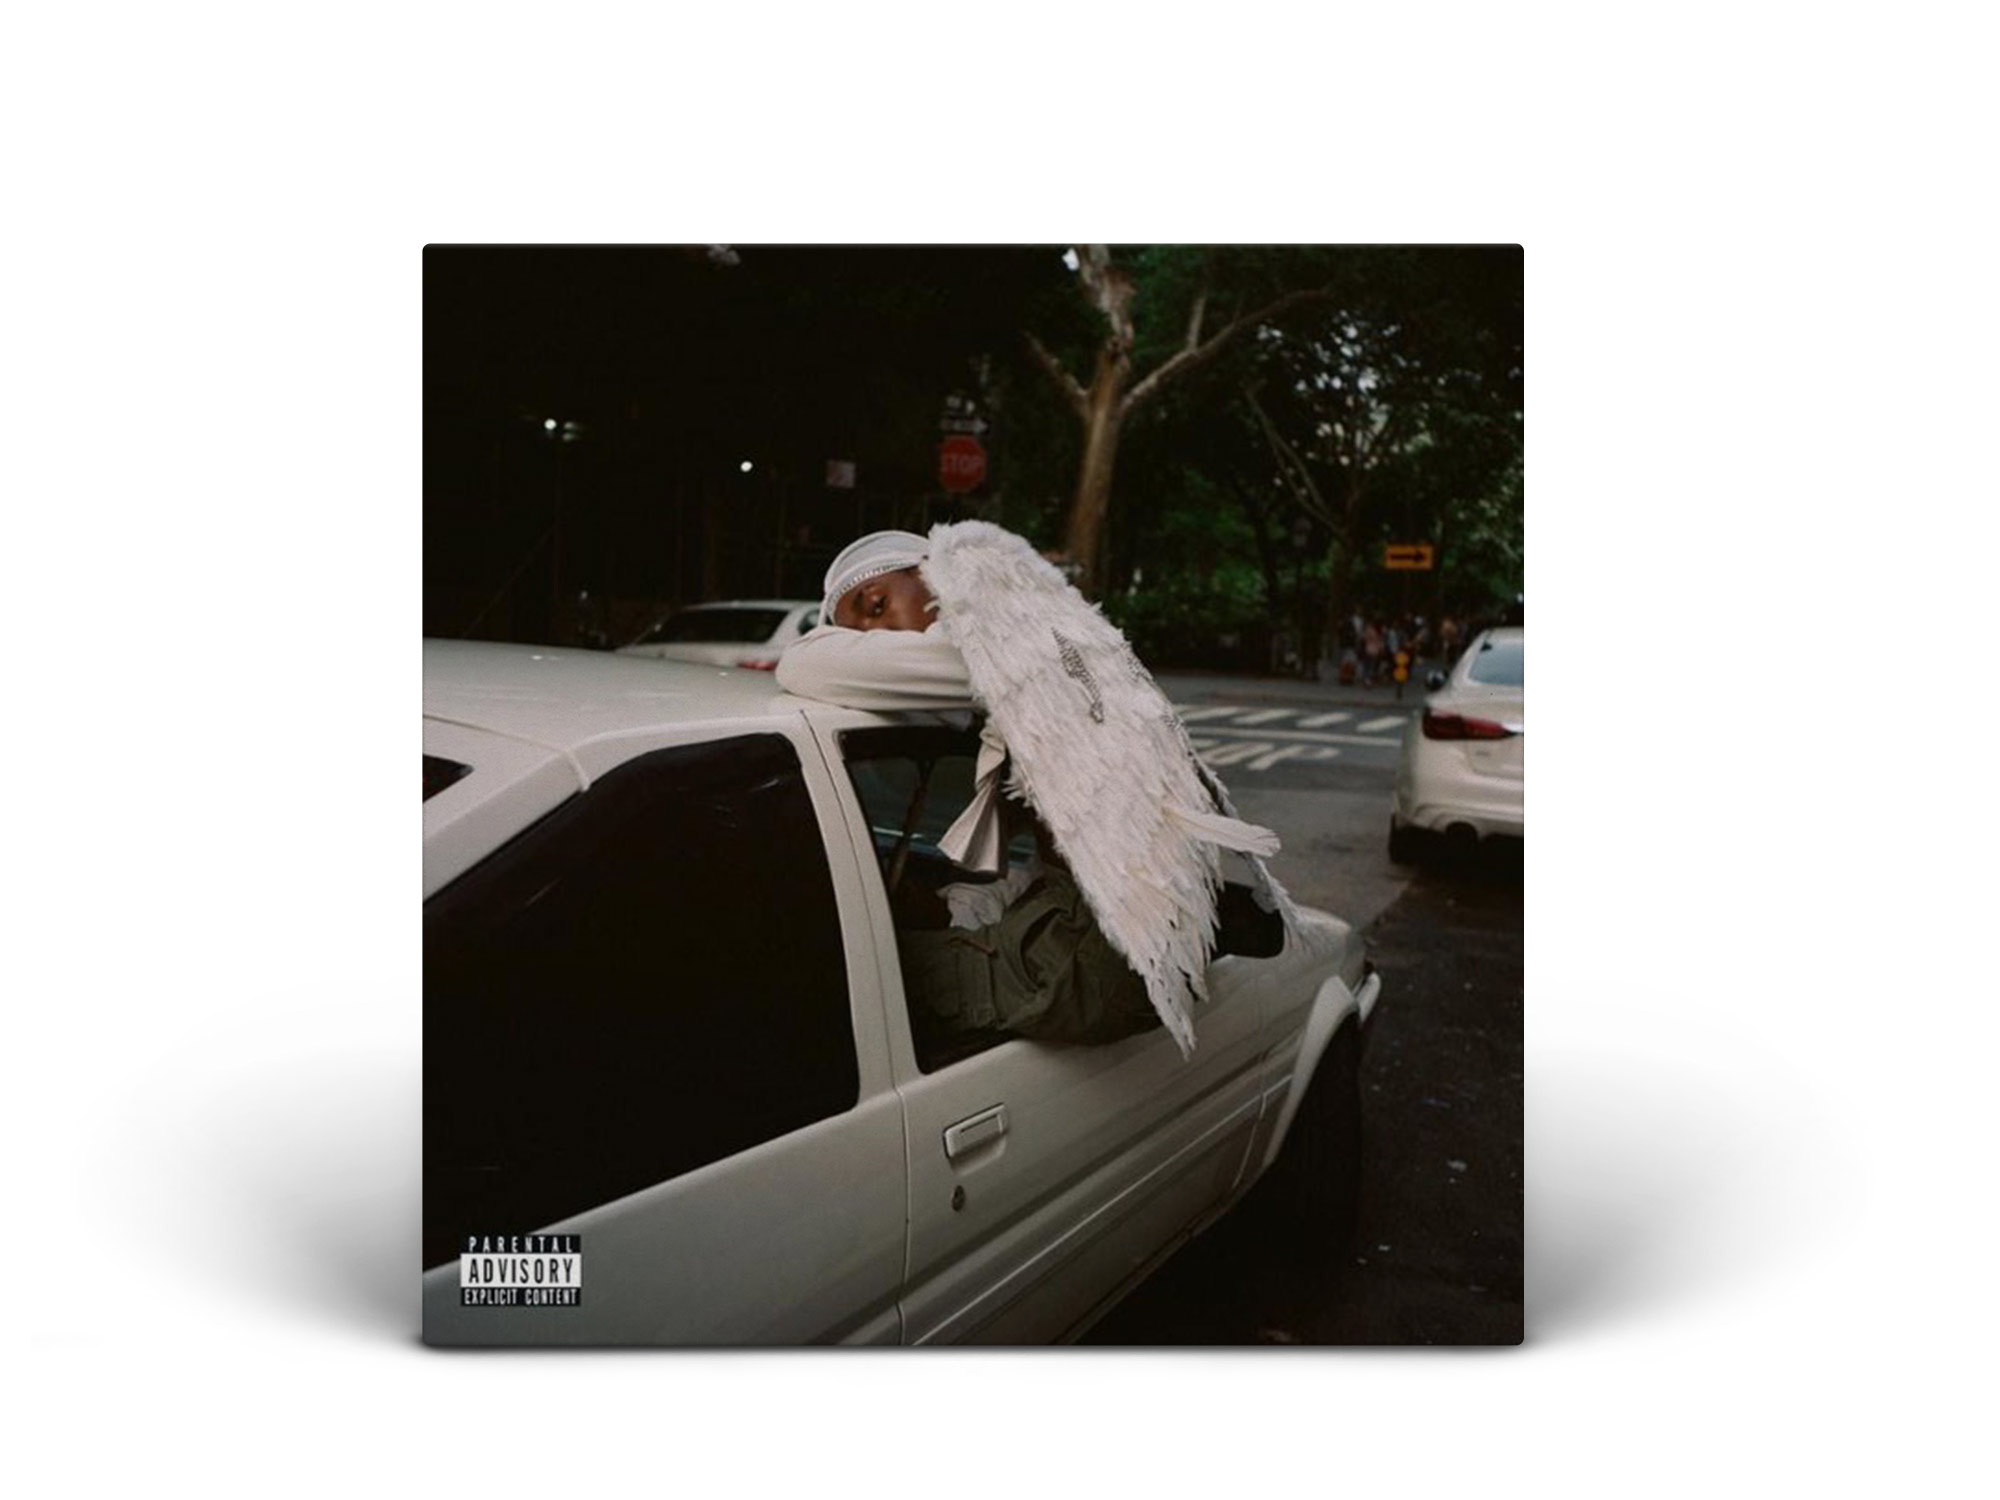 Nappy Wonder / Blood Orange - Best channeling of personal liberation.